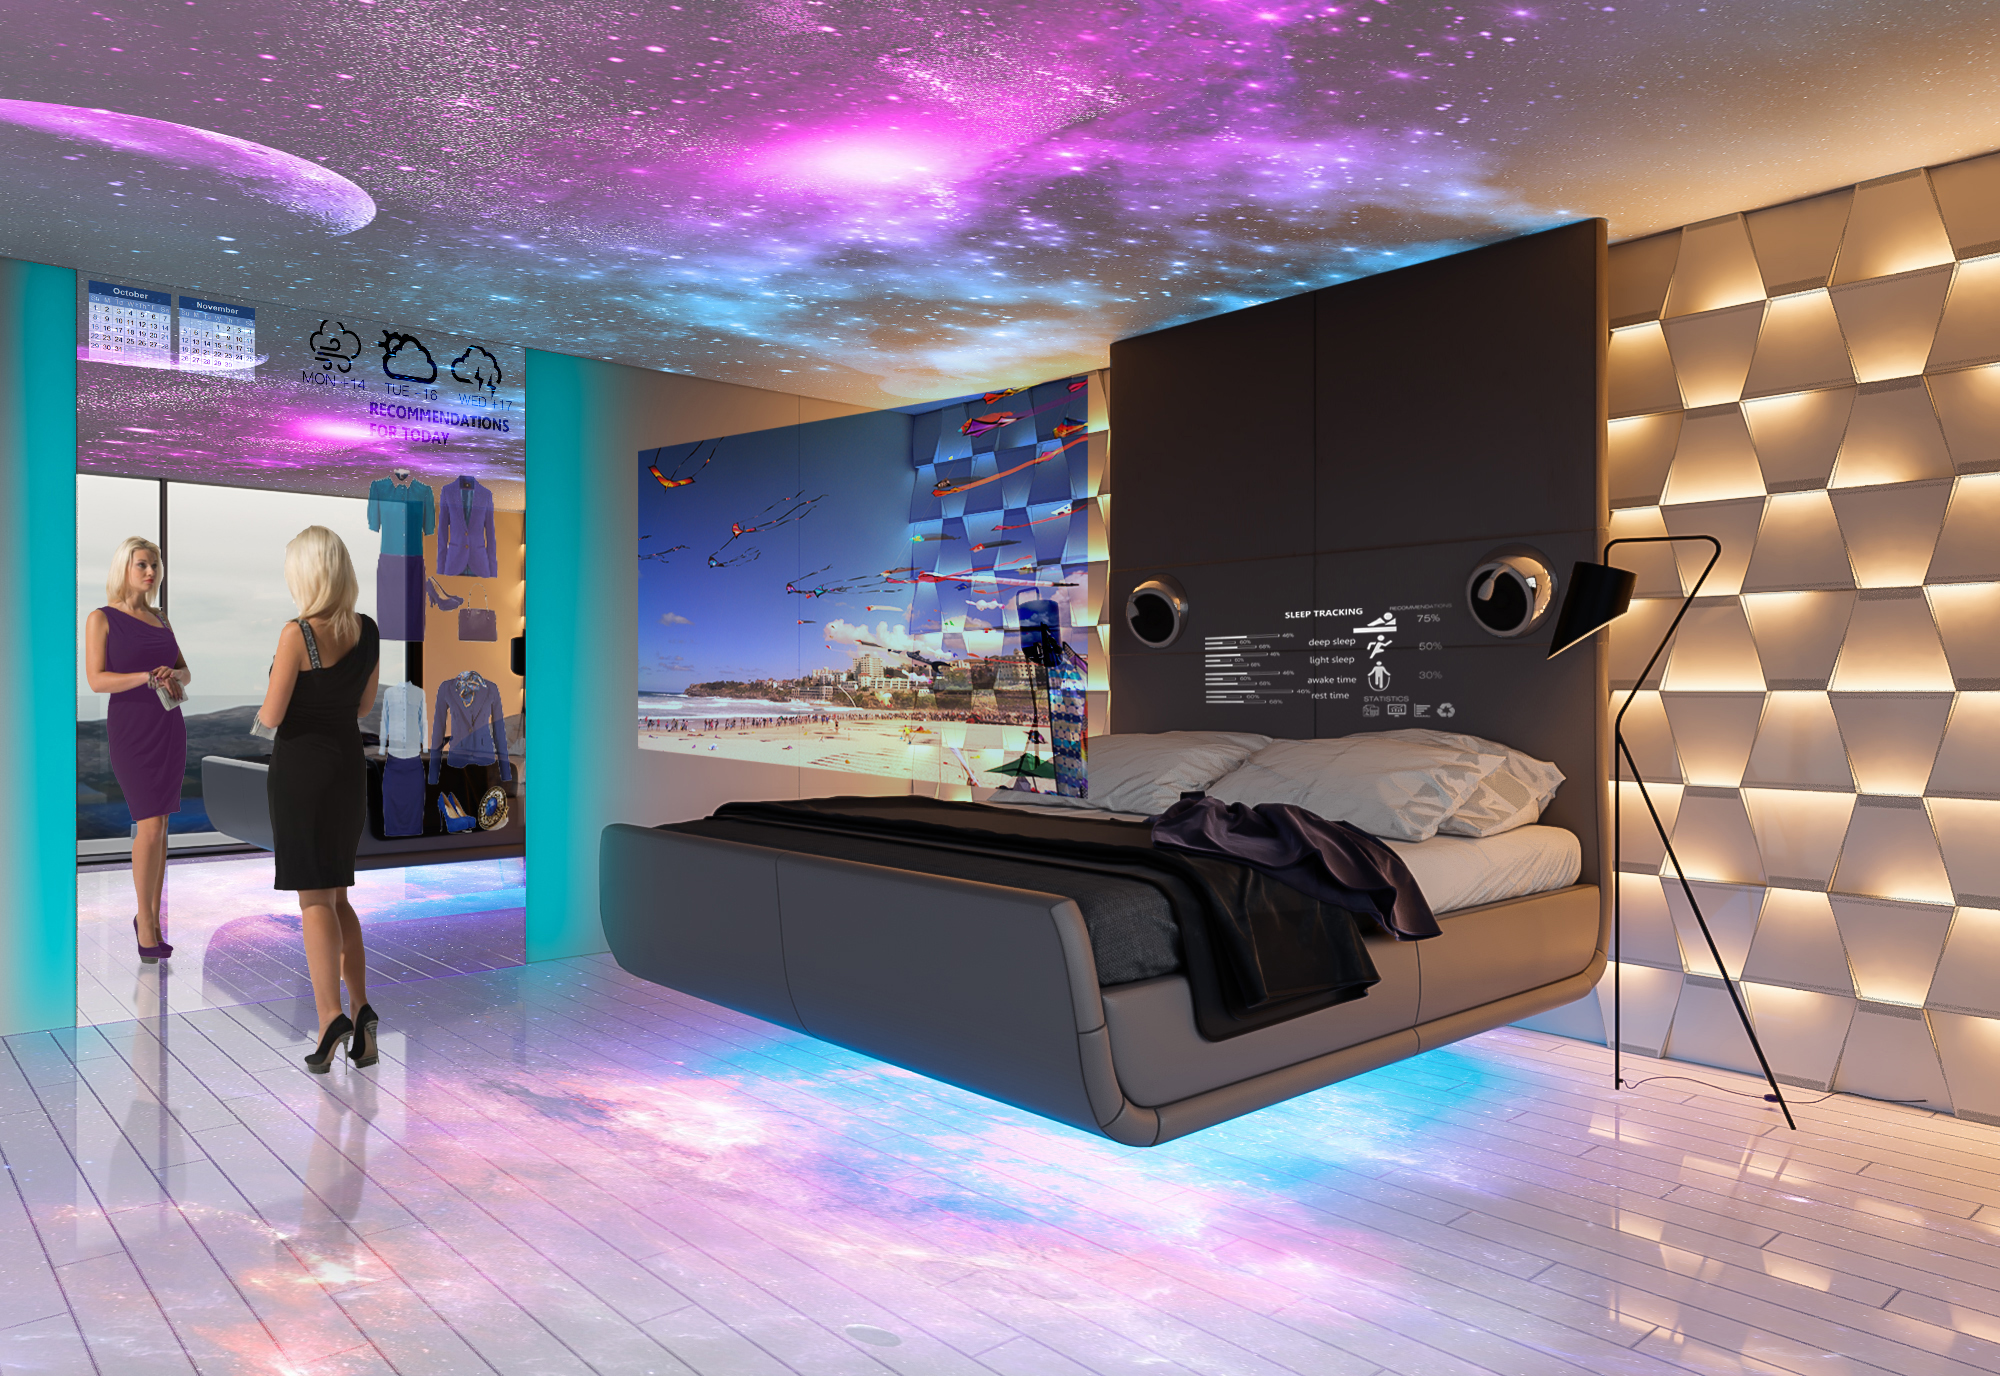 The bedroom of the future with transparent screens, digital walls and smart wardrobes. Photo Credit: NSSTUDIO.